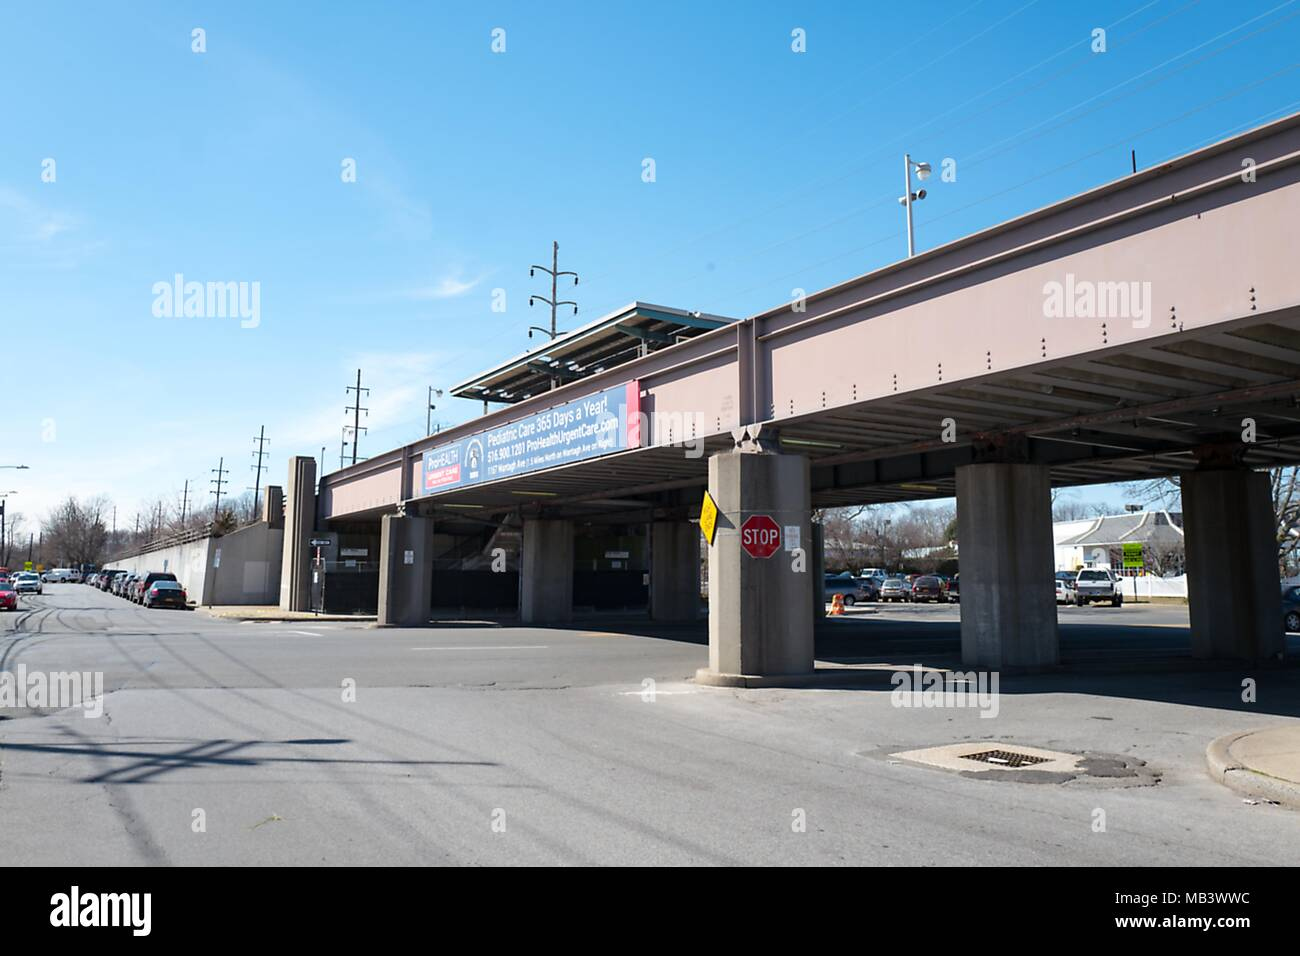 Wantagh High Resolution Stock Photography And Images Alamy